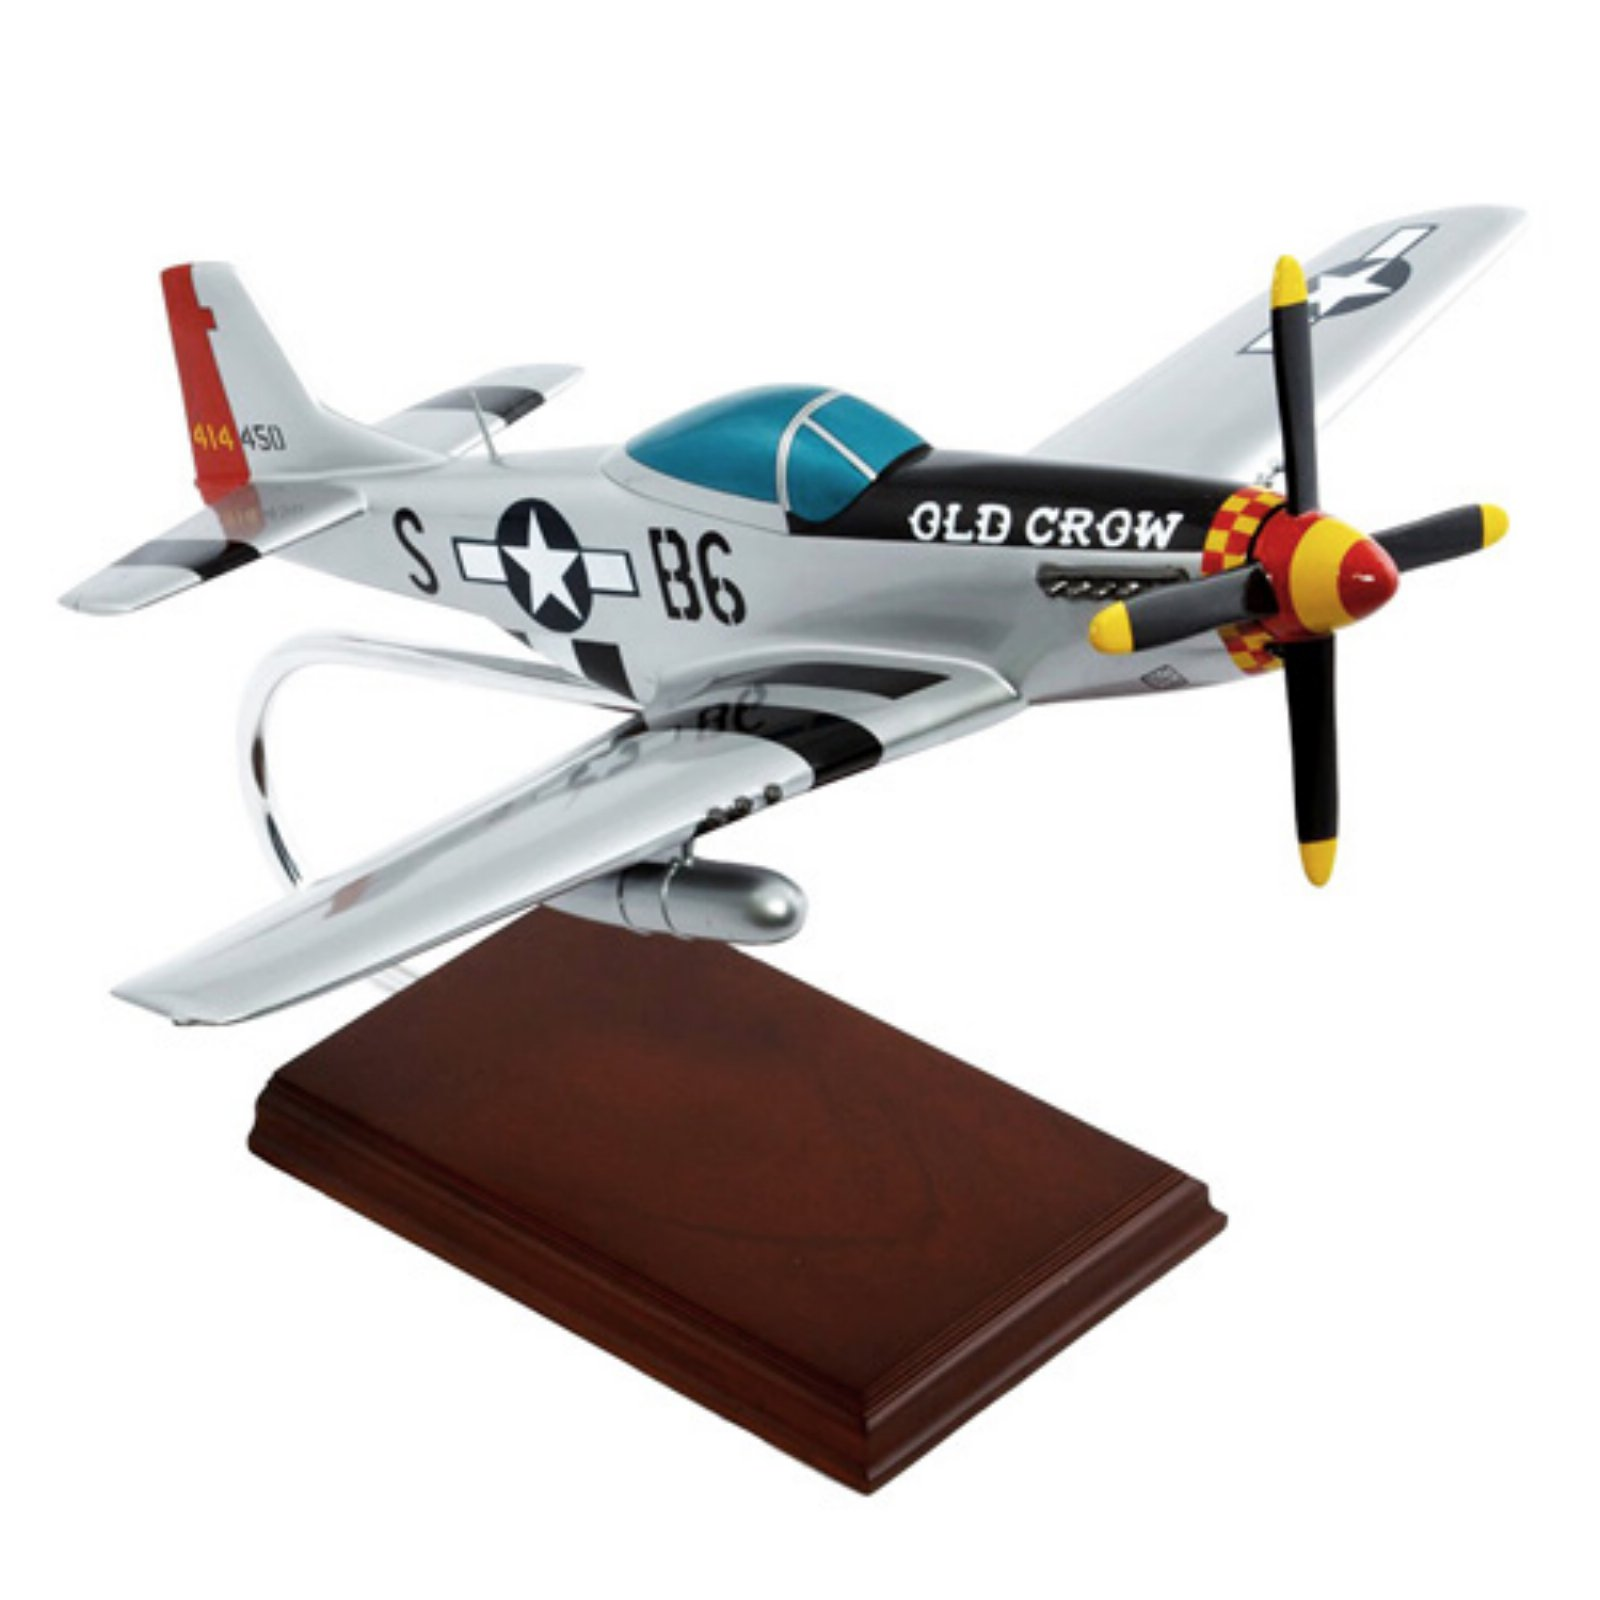 MasterCraft P-51D Mustang Old Crow Model Plane